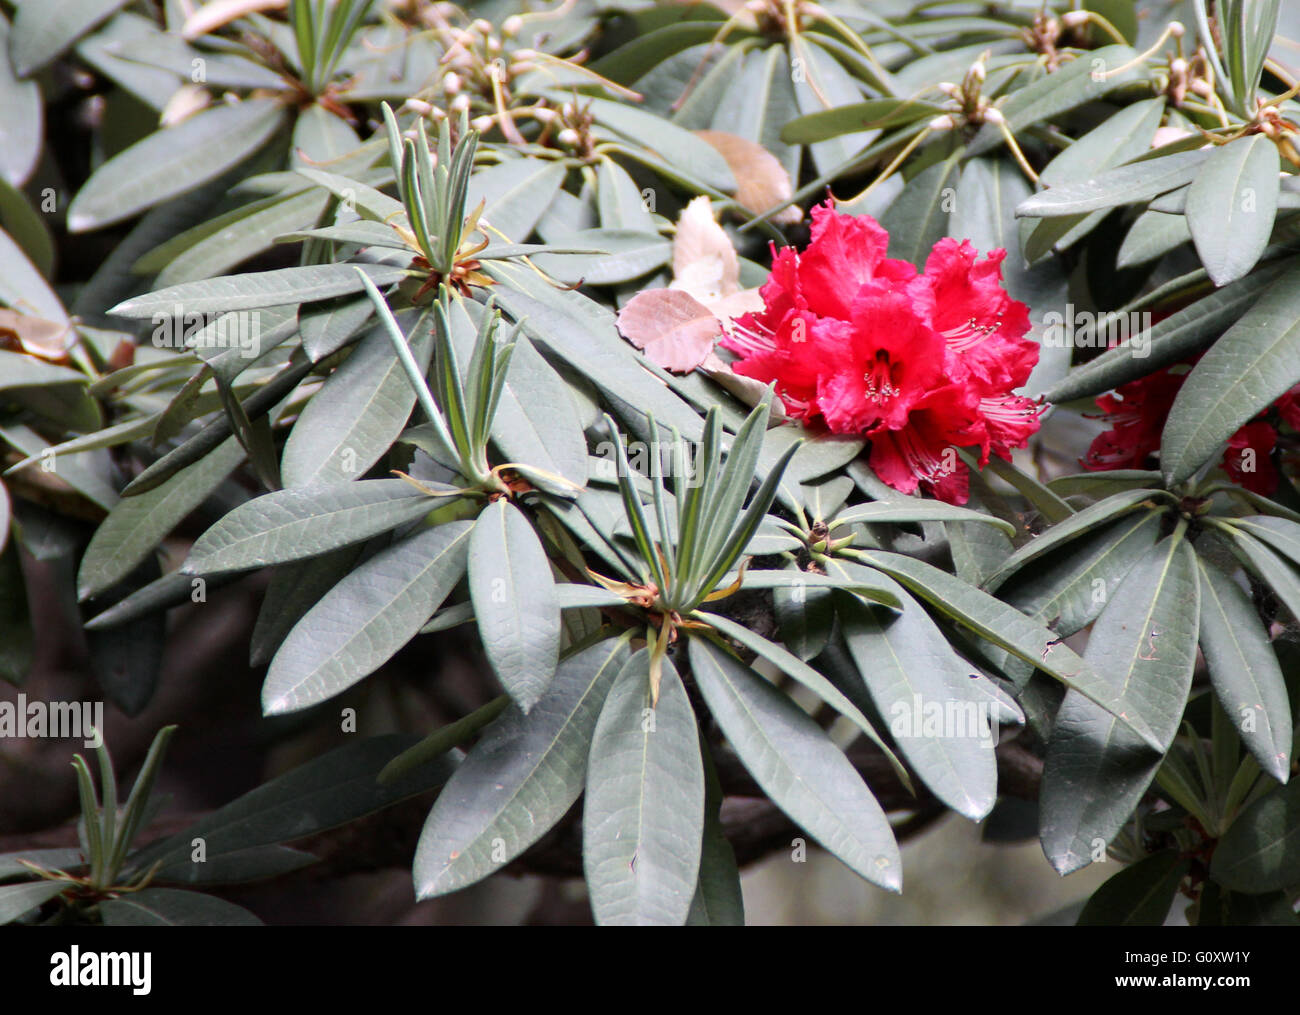 Rhododendron arboreum, Tree Rhododendron, evergreen shrub or small tree with bright red flowers in clusters - Stock Image